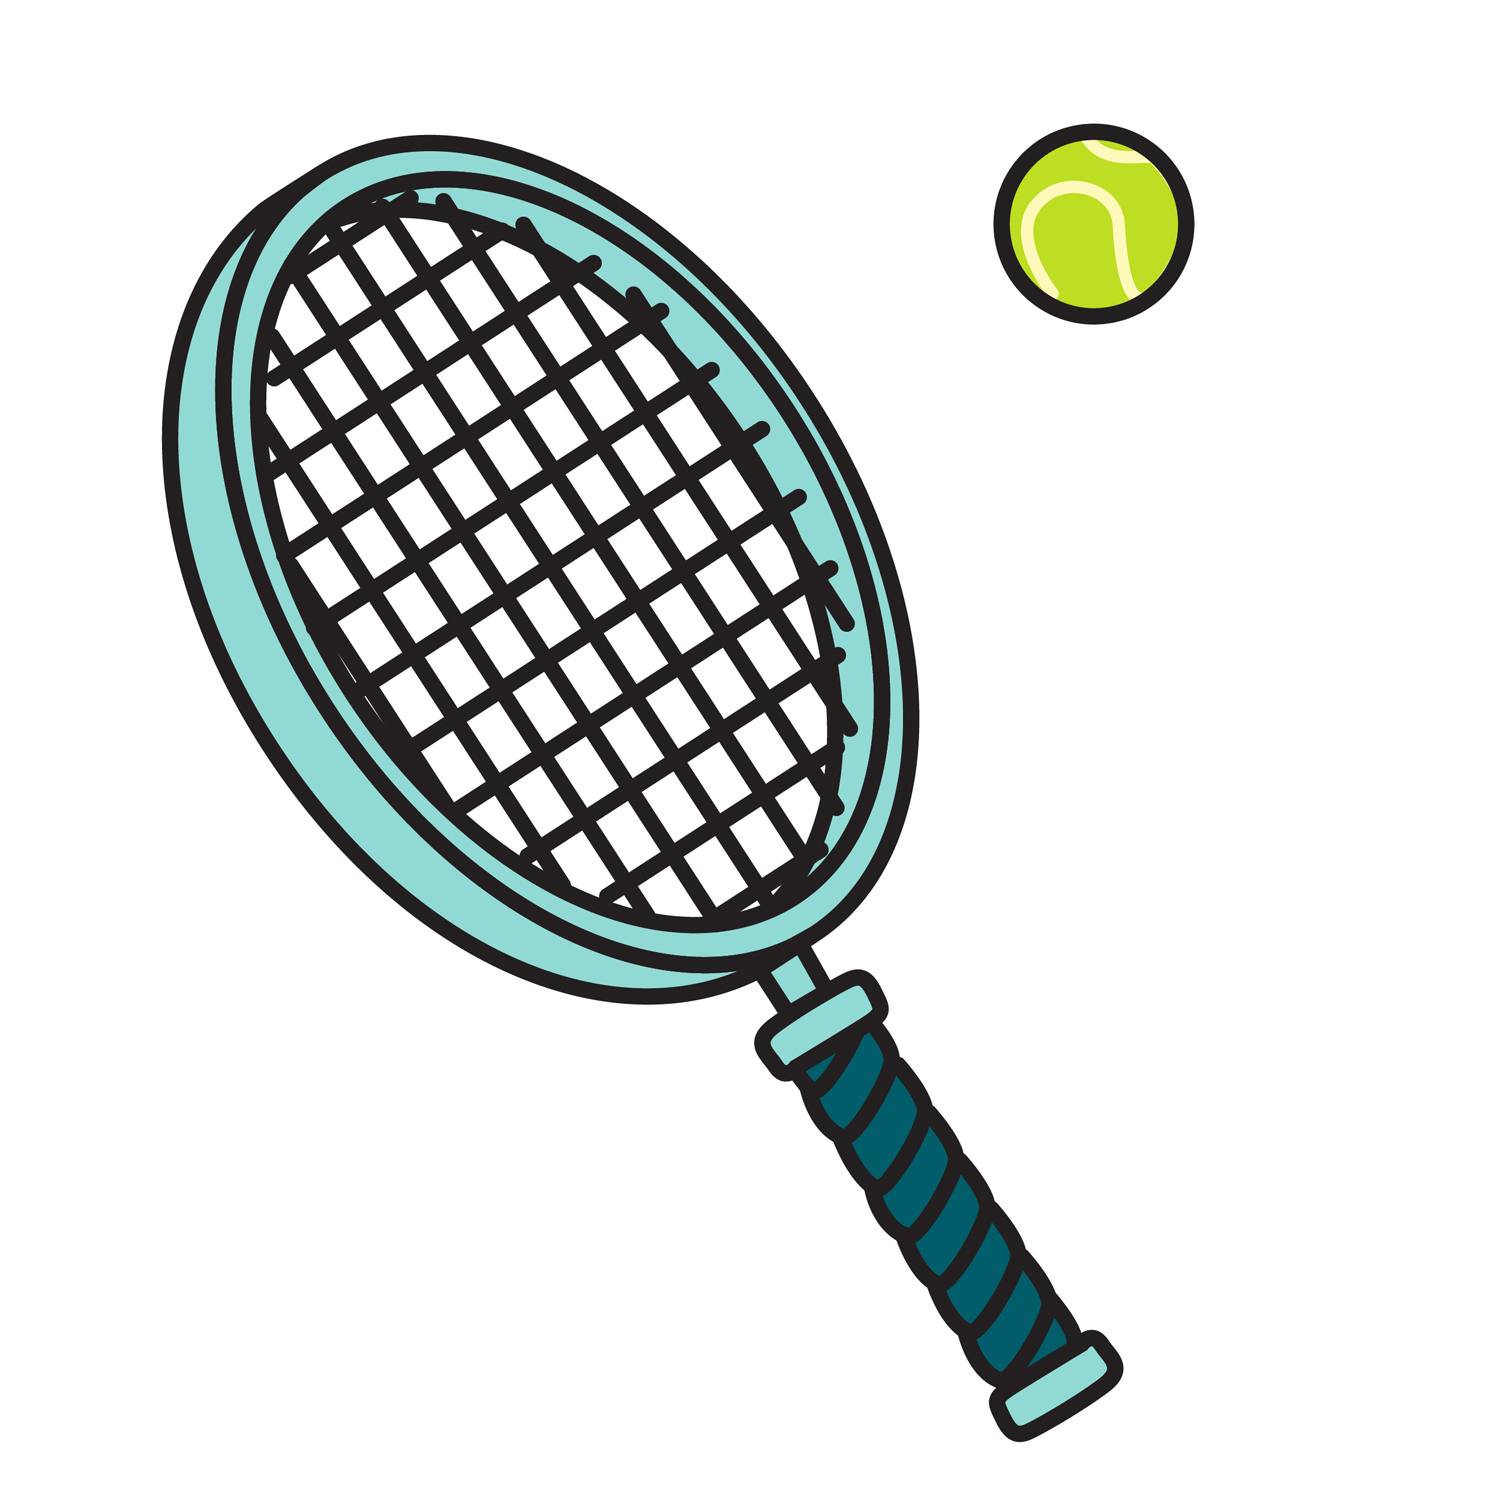 Tennis racket hitting ball clipart clipart black and white stock 14 Tennis Racket And Ball Vector Images - Tennis Racket and ... clipart black and white stock